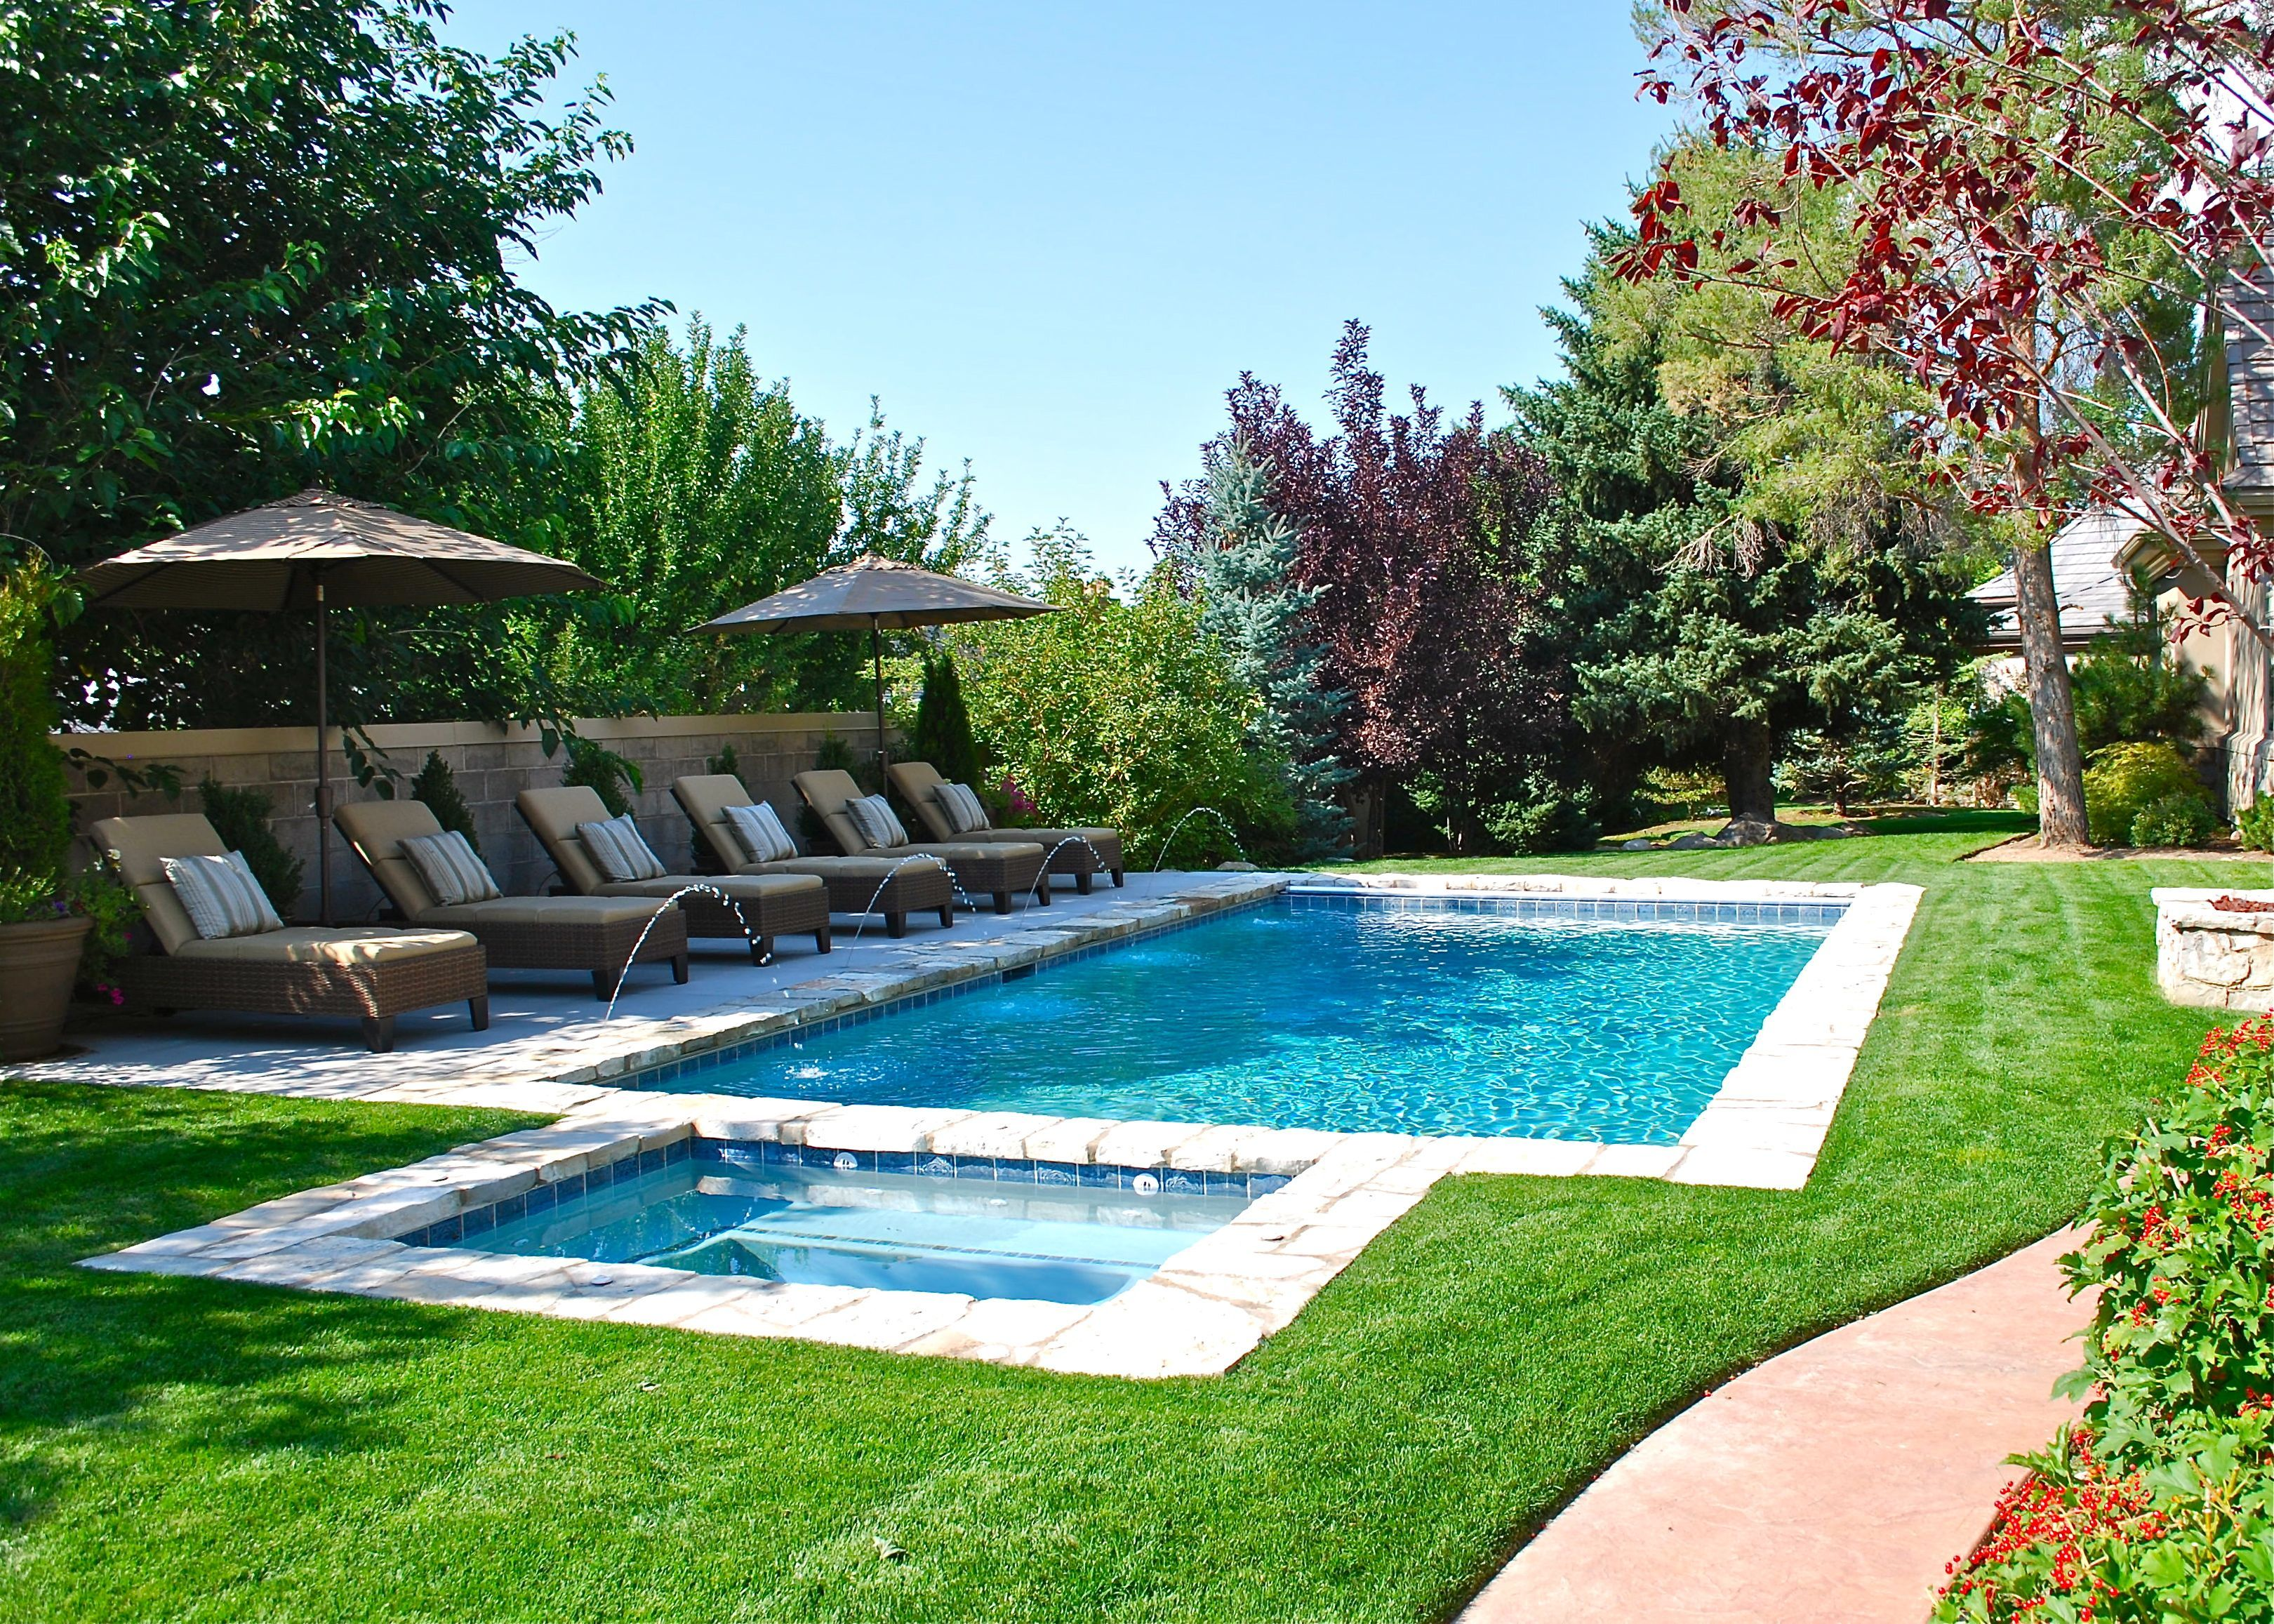 Backyard swimming pool with minimal decking deckjets and for Backyard swimming pool designs